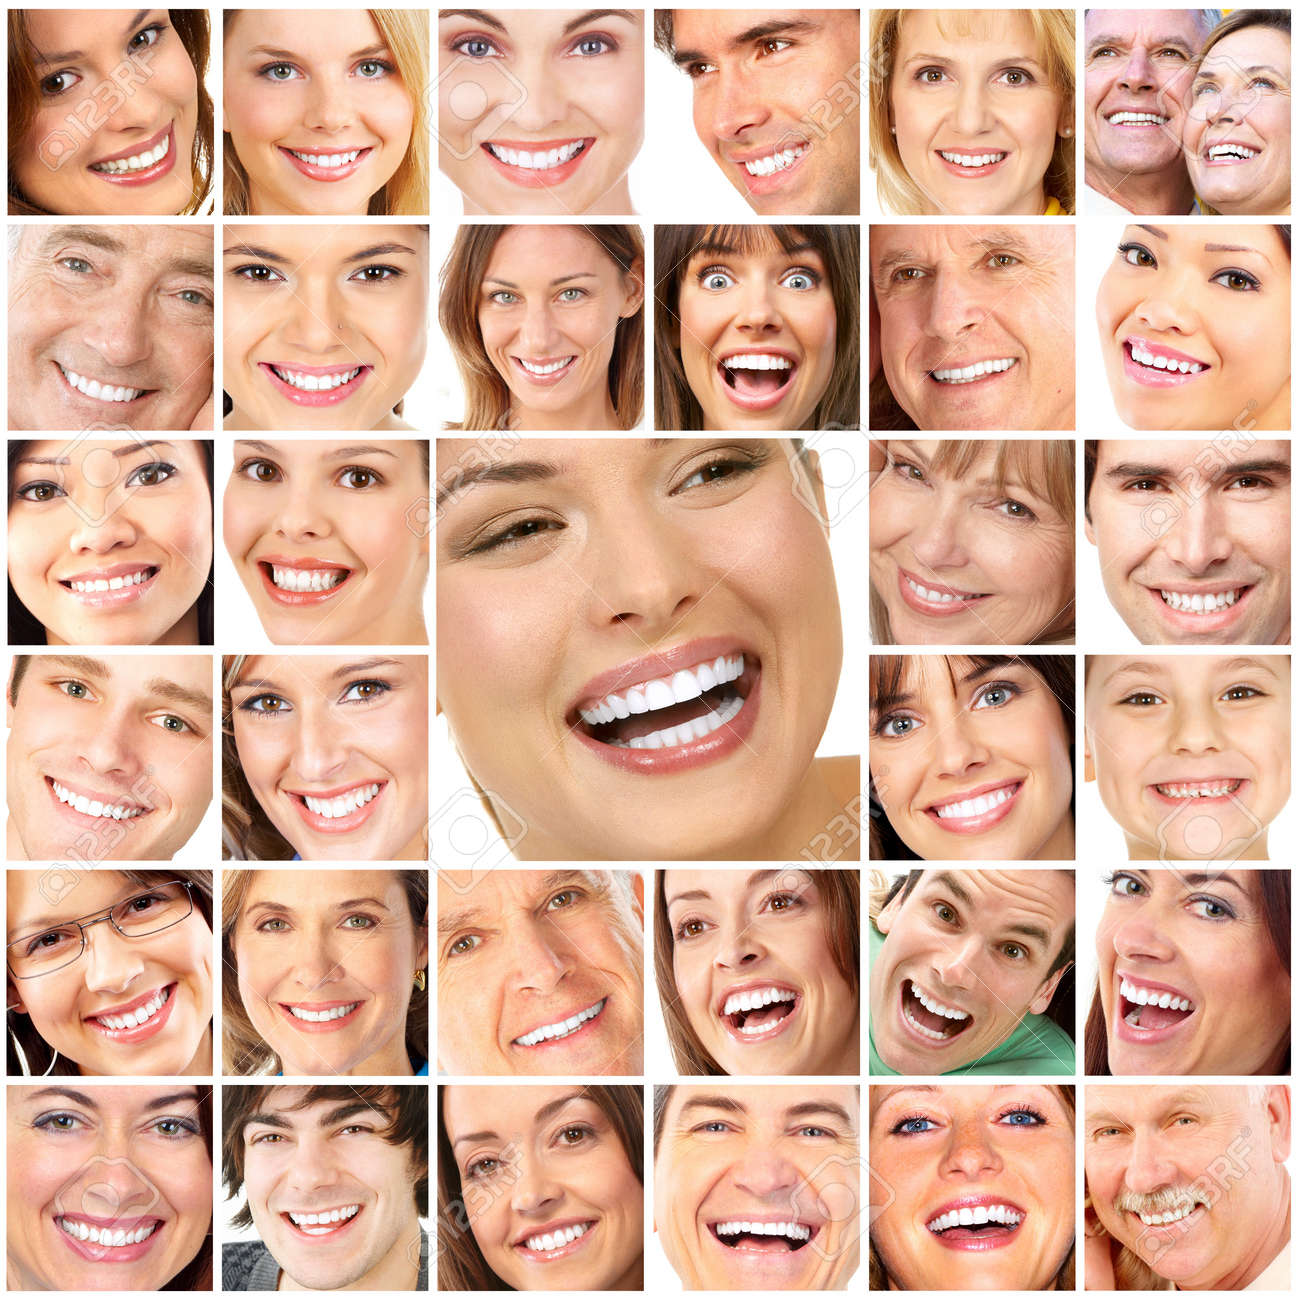 Faces of smiling people. Teeth care. Smile Stock Photo - 7635214